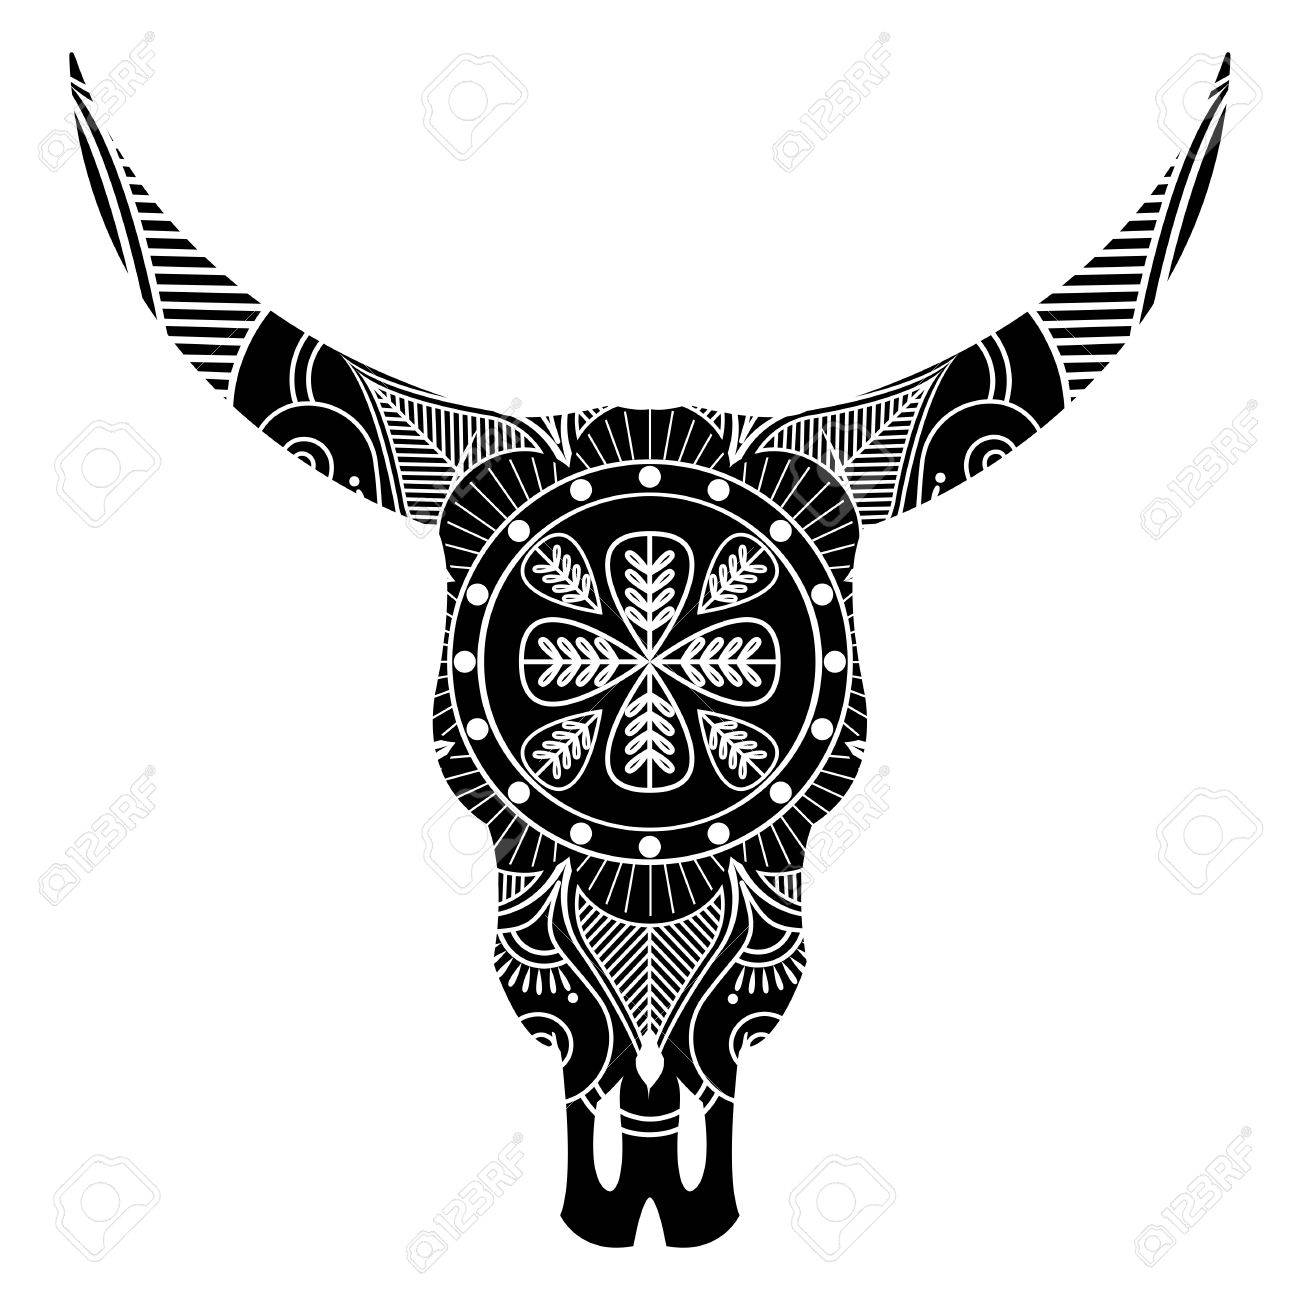 Wild Animal Skull In Black And White Inspired By Hand Drawn